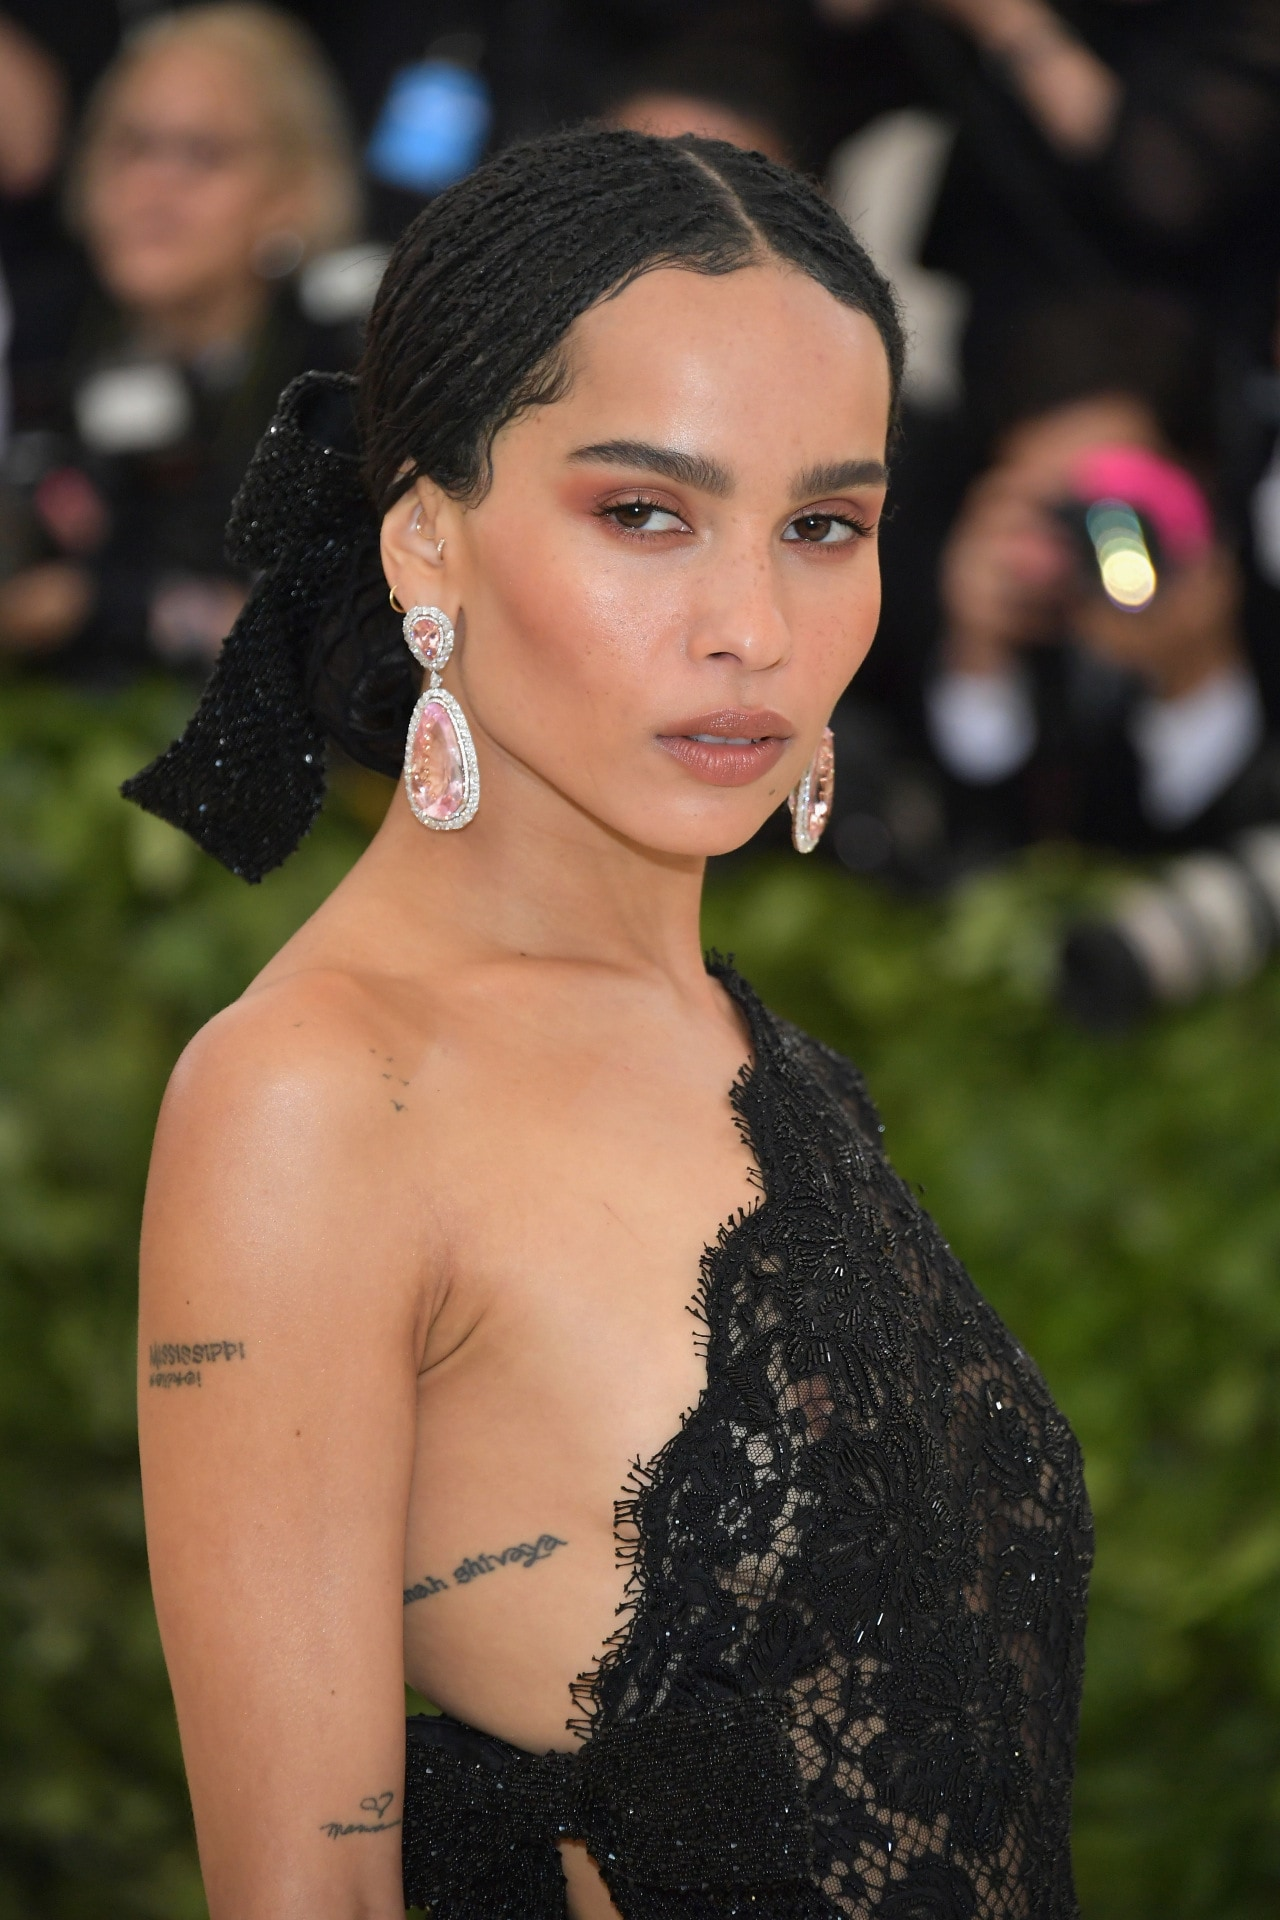 Zoë Kravitz has been announced as the new face of YSL Beauté Black Opium